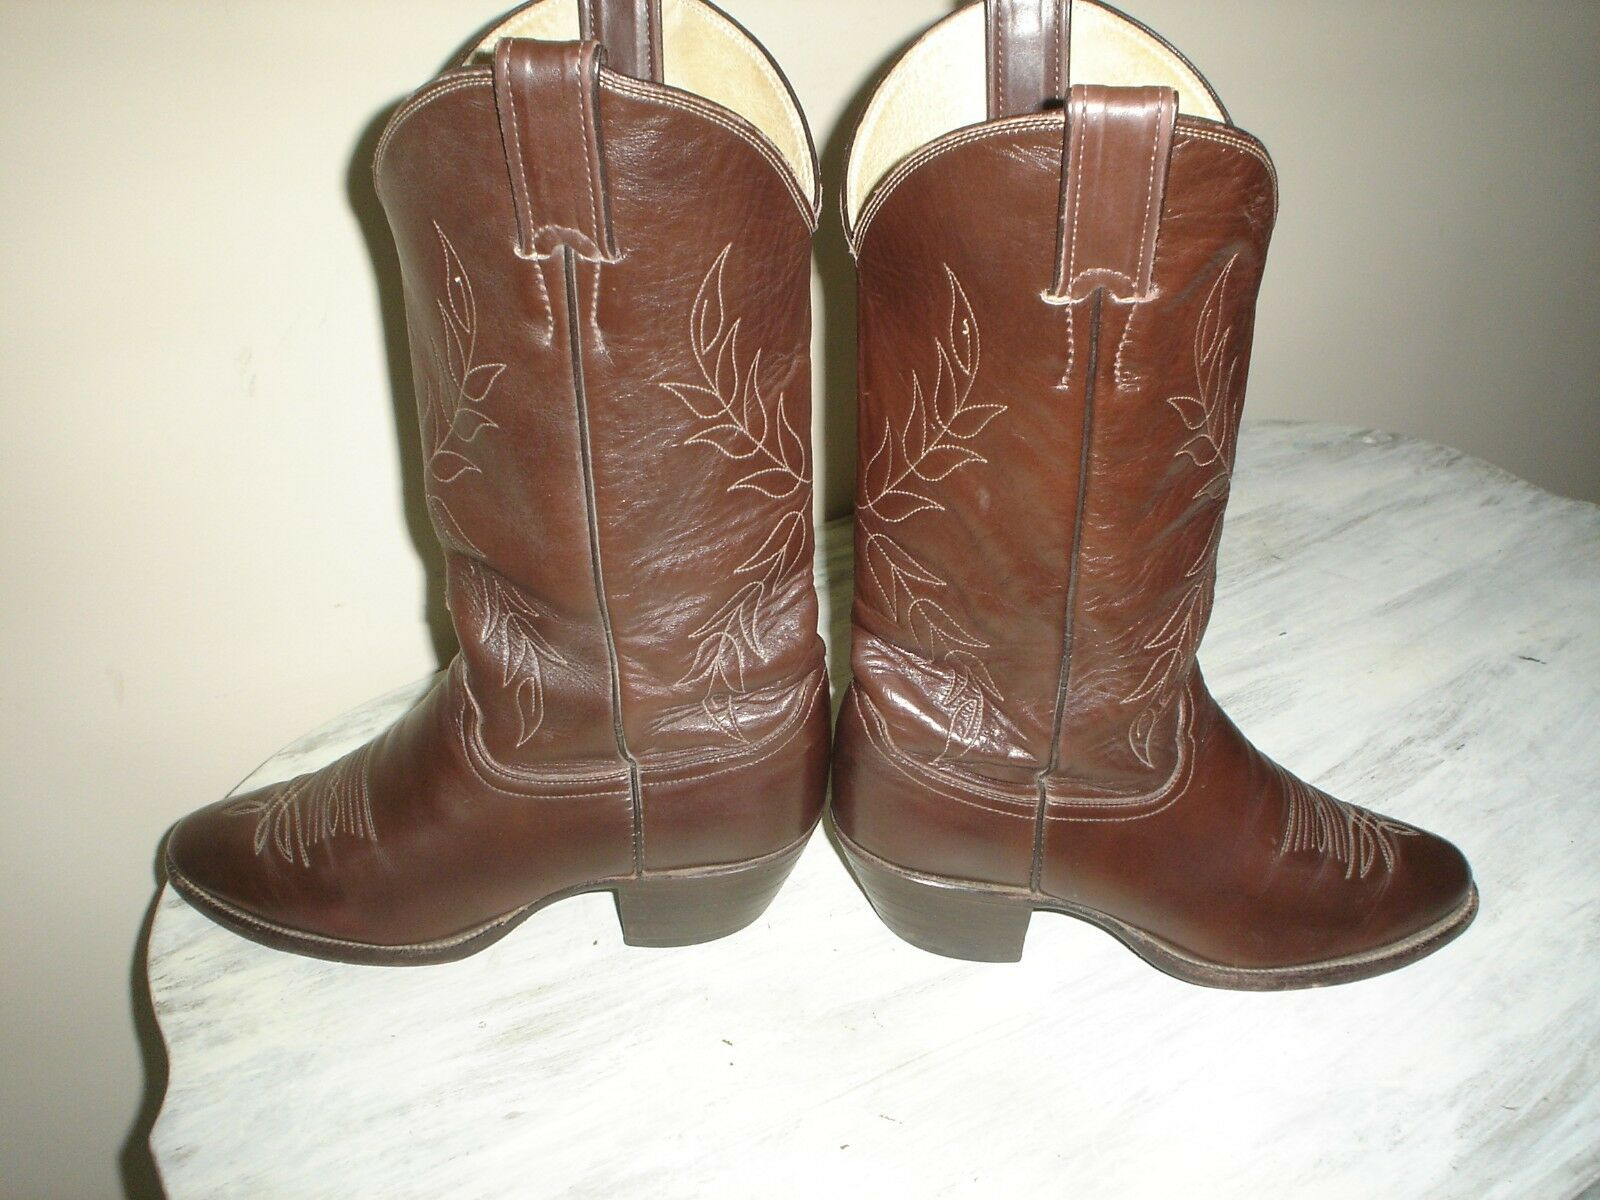 JUSTIN Women's 5407 Chocolate Brown LEATHER COWBOY WESTERN BOOTS BOOTS BOOTS USA  7.5 B VGC 87d05d